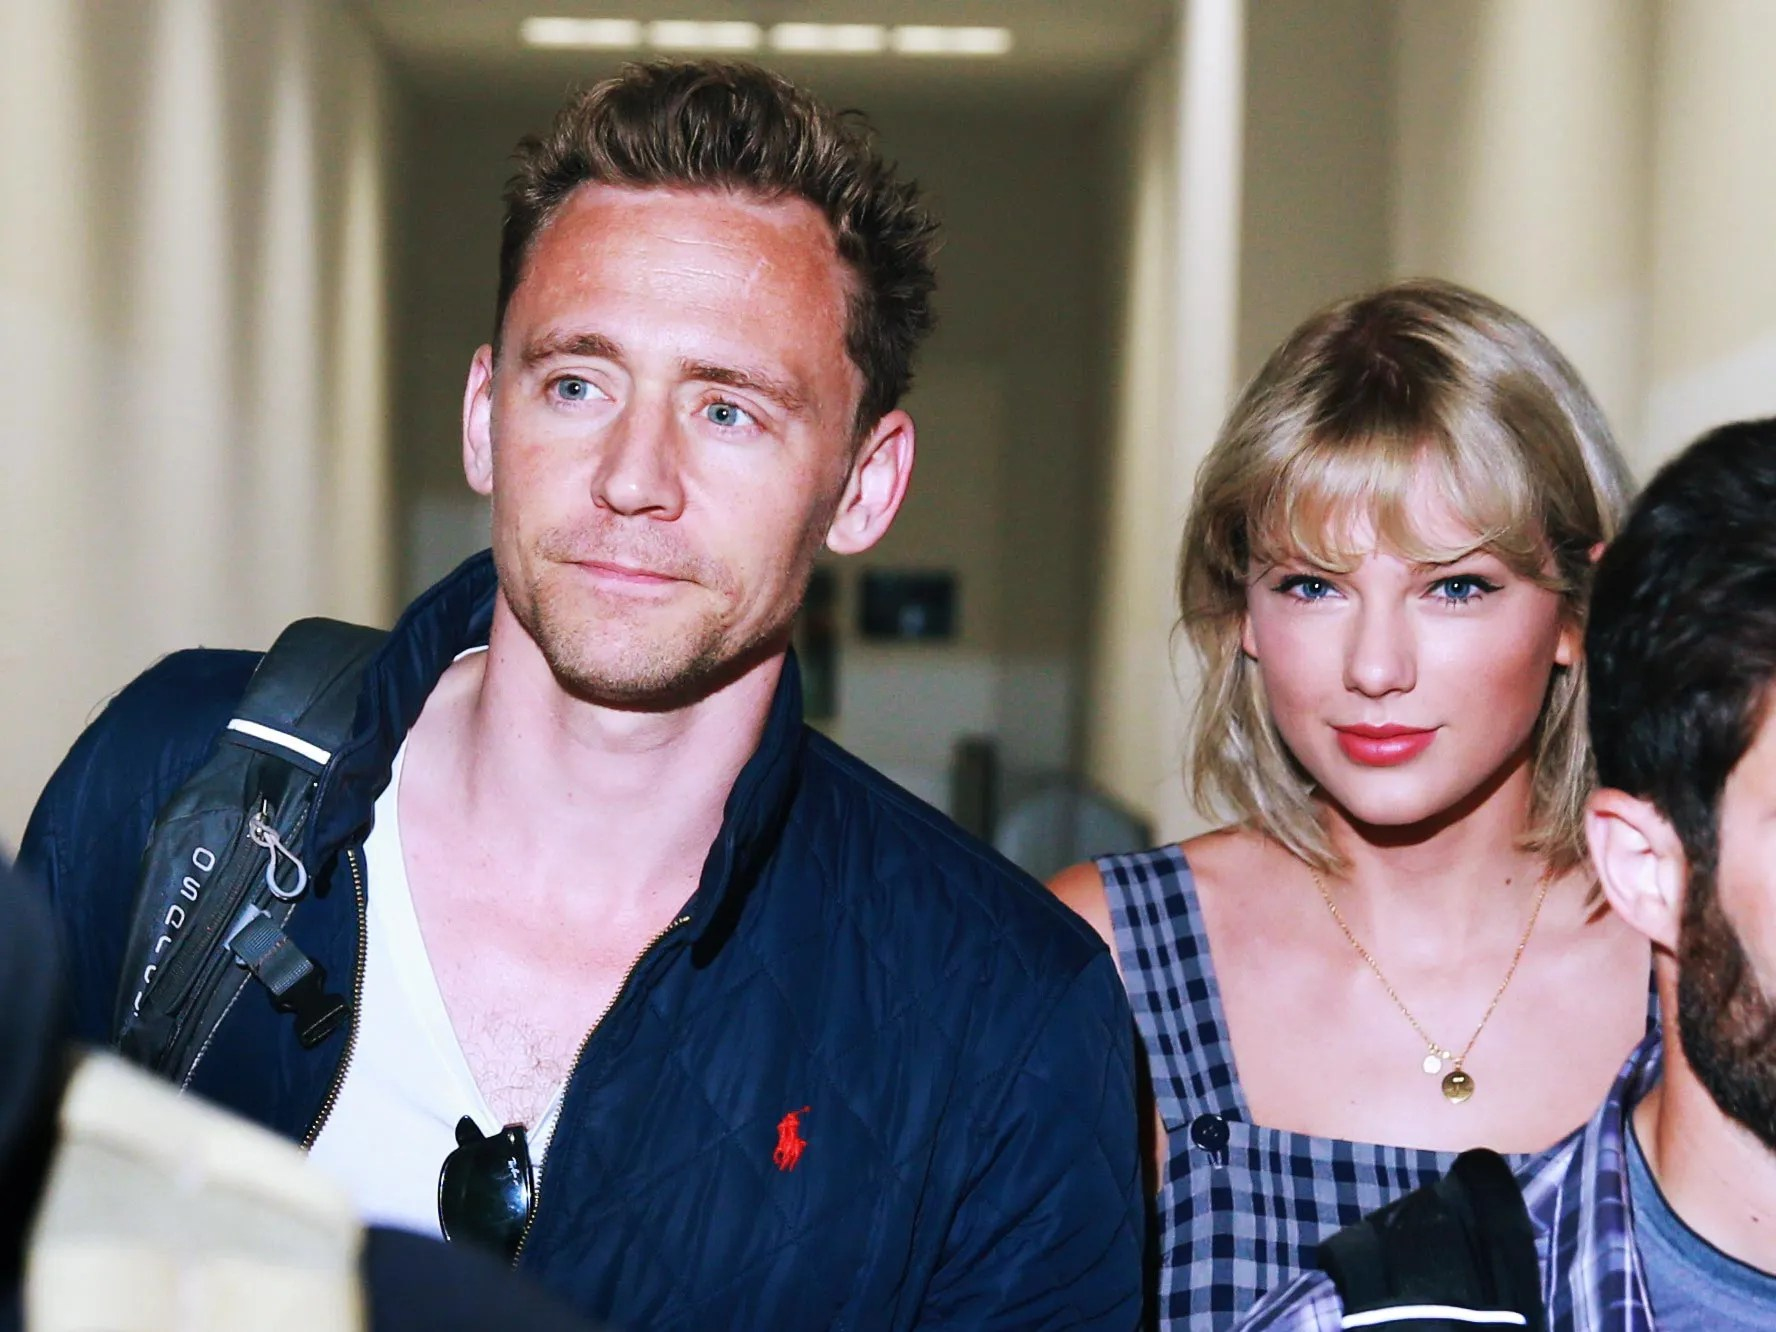 Tom Tailor Winter Love A Fashion Friend It S Ok To Start Speculating About Taylor Swift S Tom Hiddleston